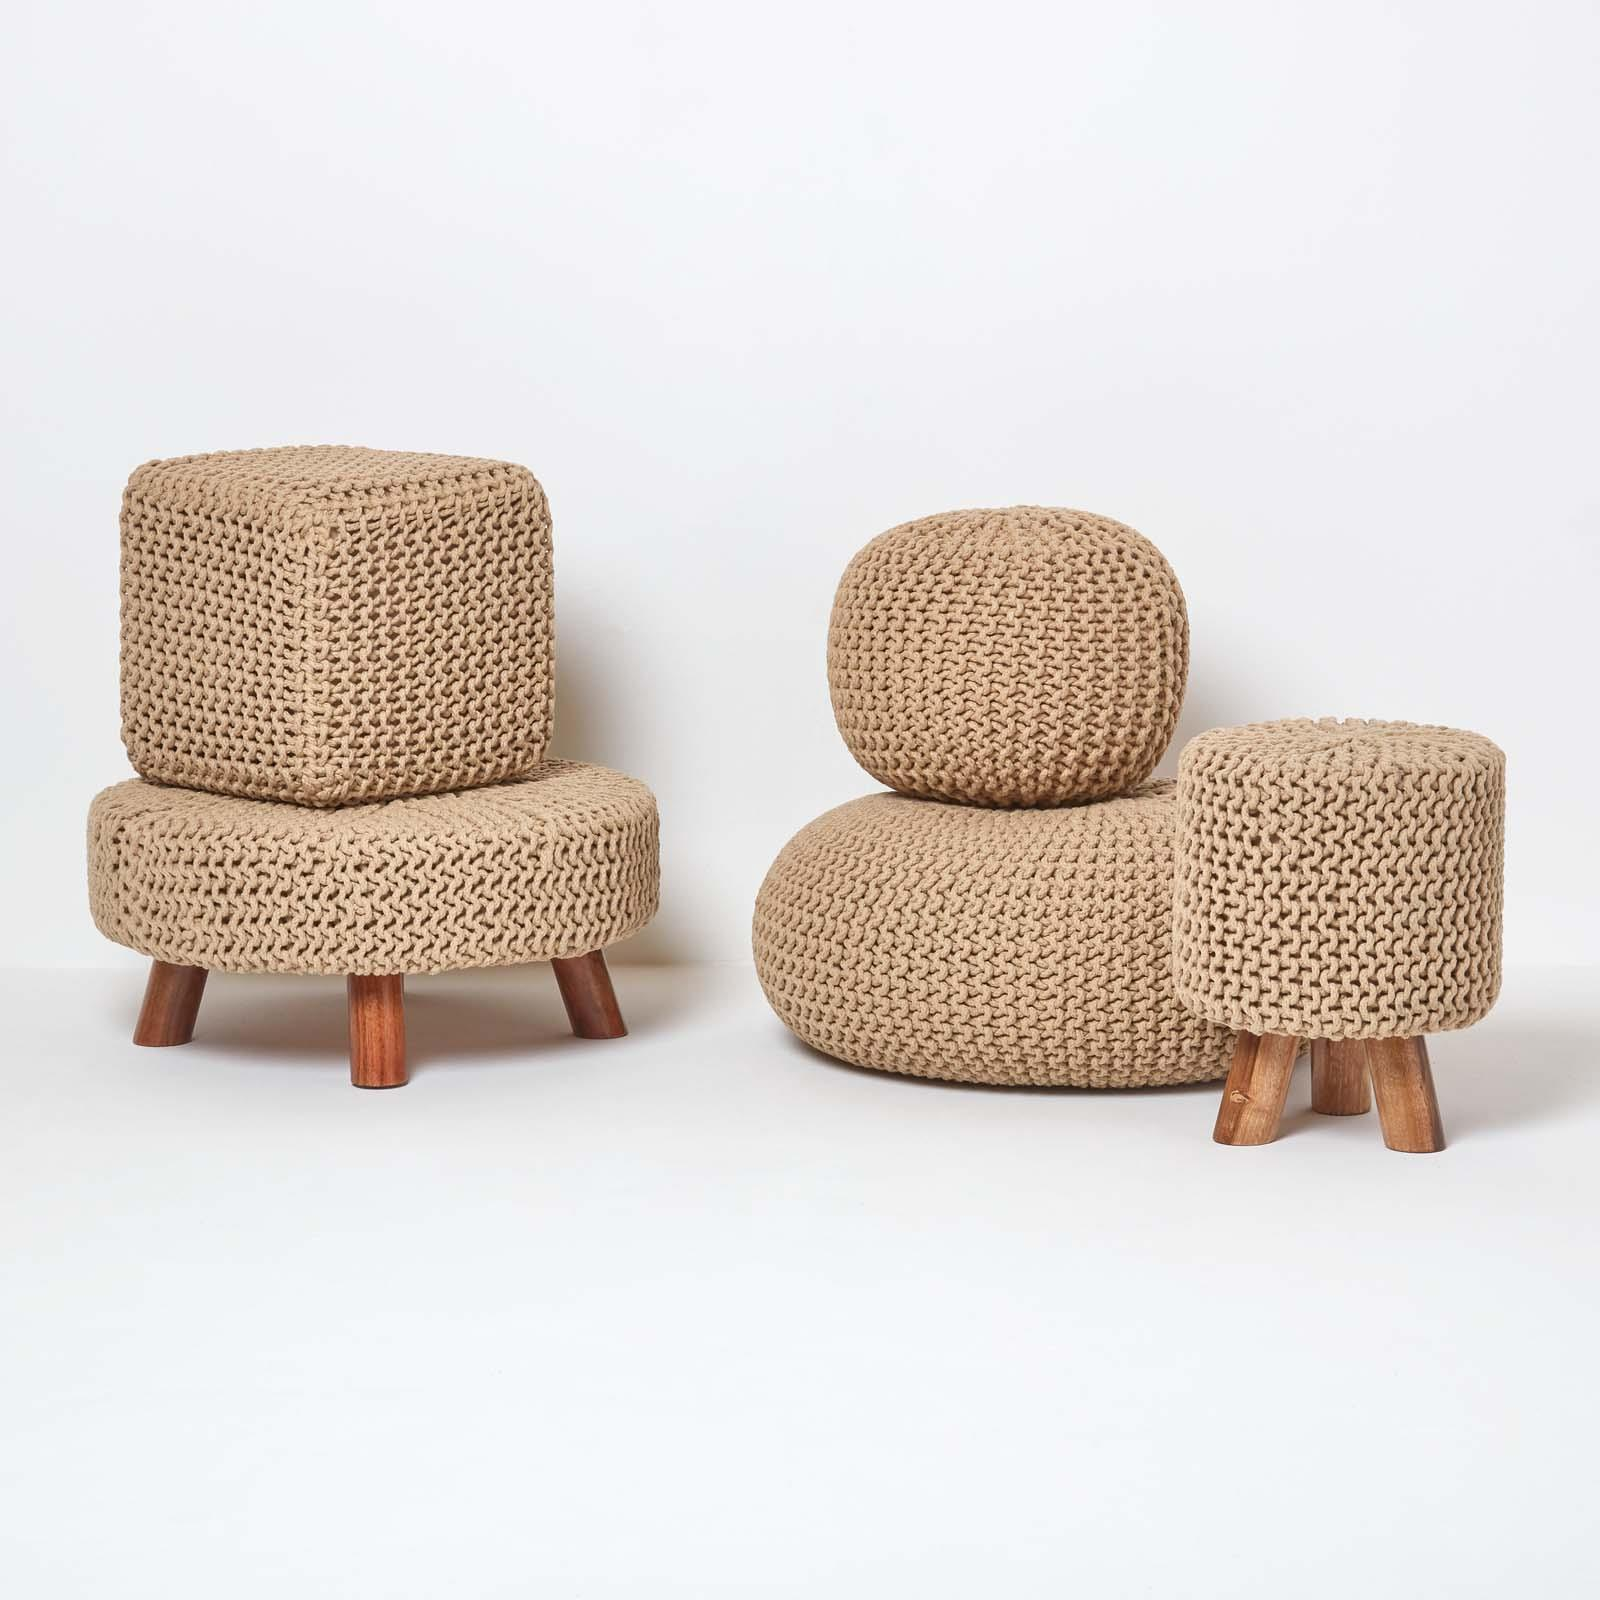 Hand-Knitted-100-Cotton-Pouffes-Round-Sphere-Or-Cube-Square-Chunky-Footstools thumbnail 83